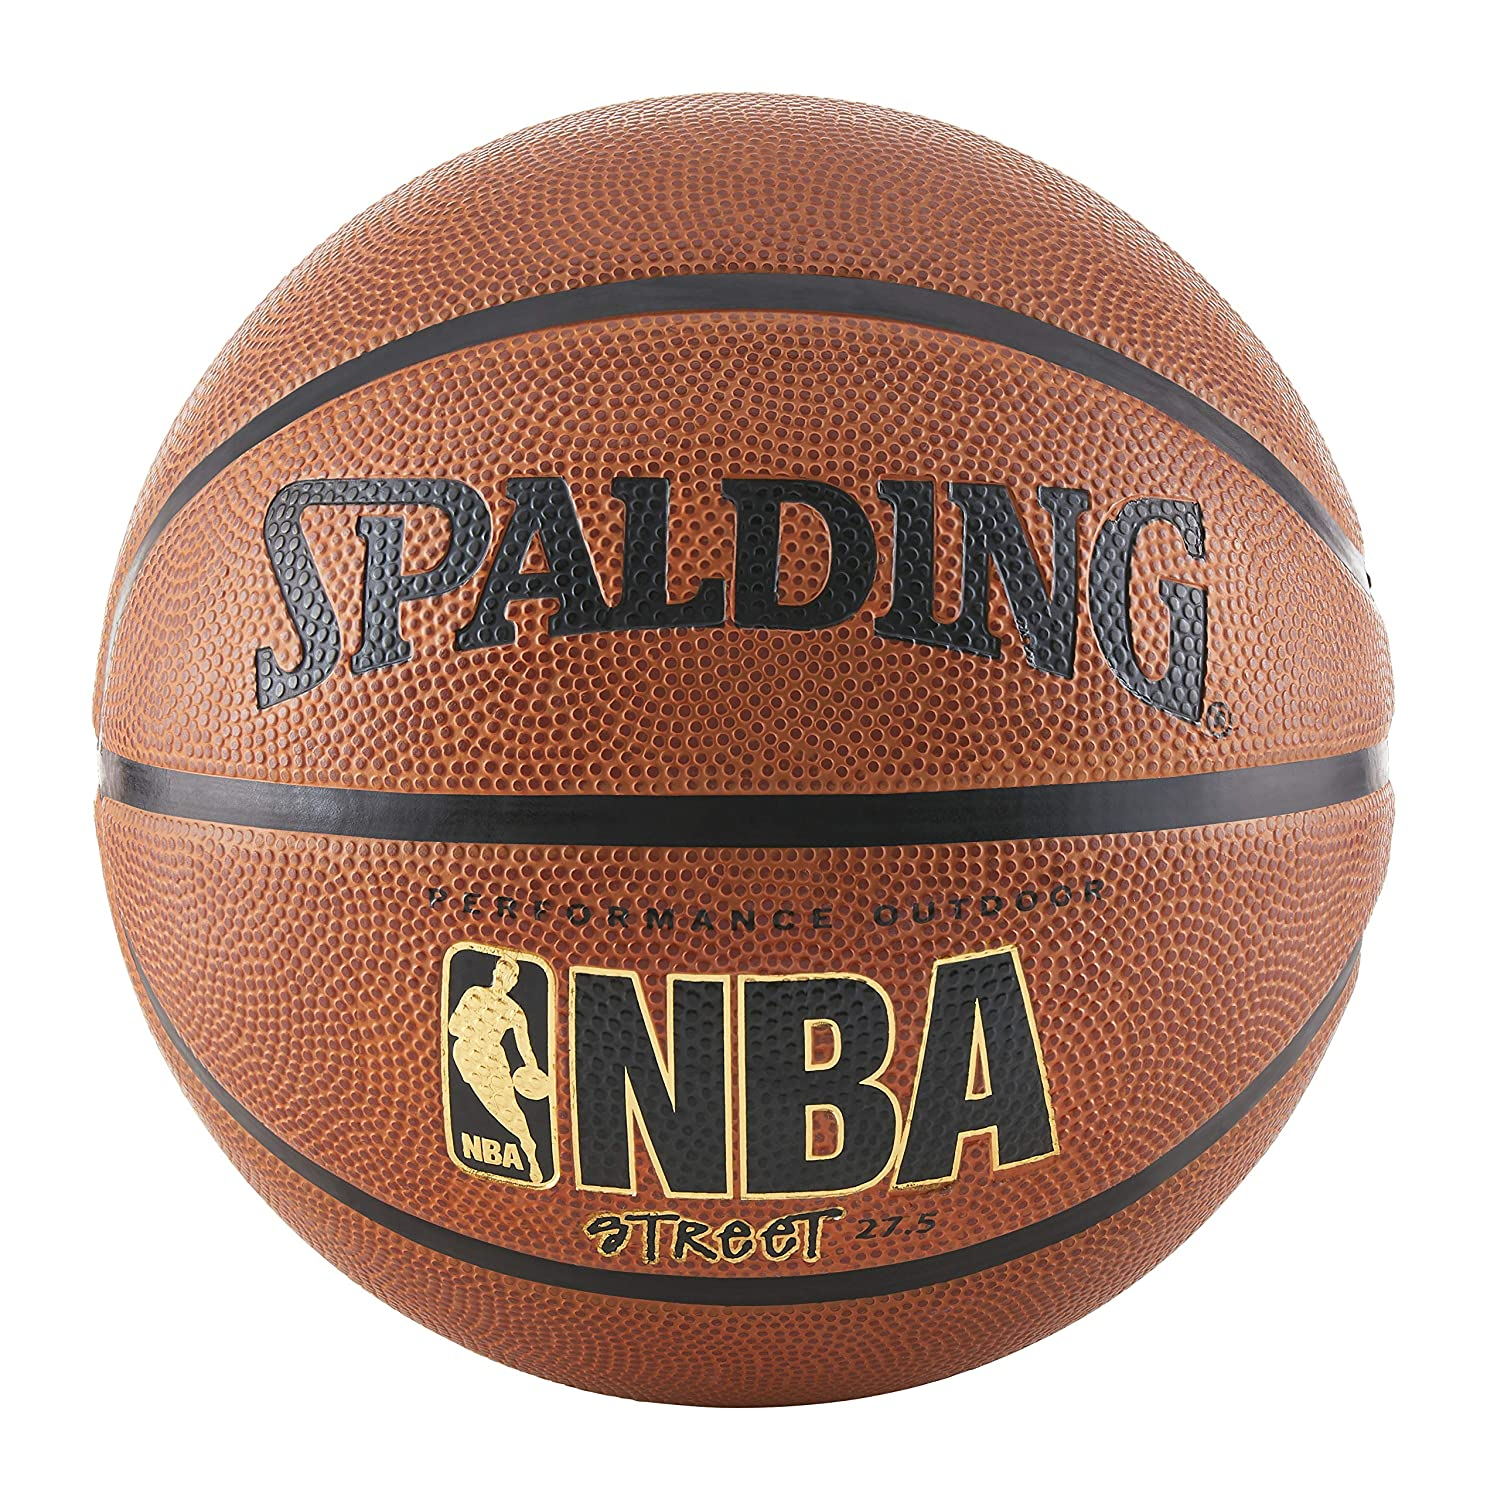 Spalding NBA Street Basketball 73770